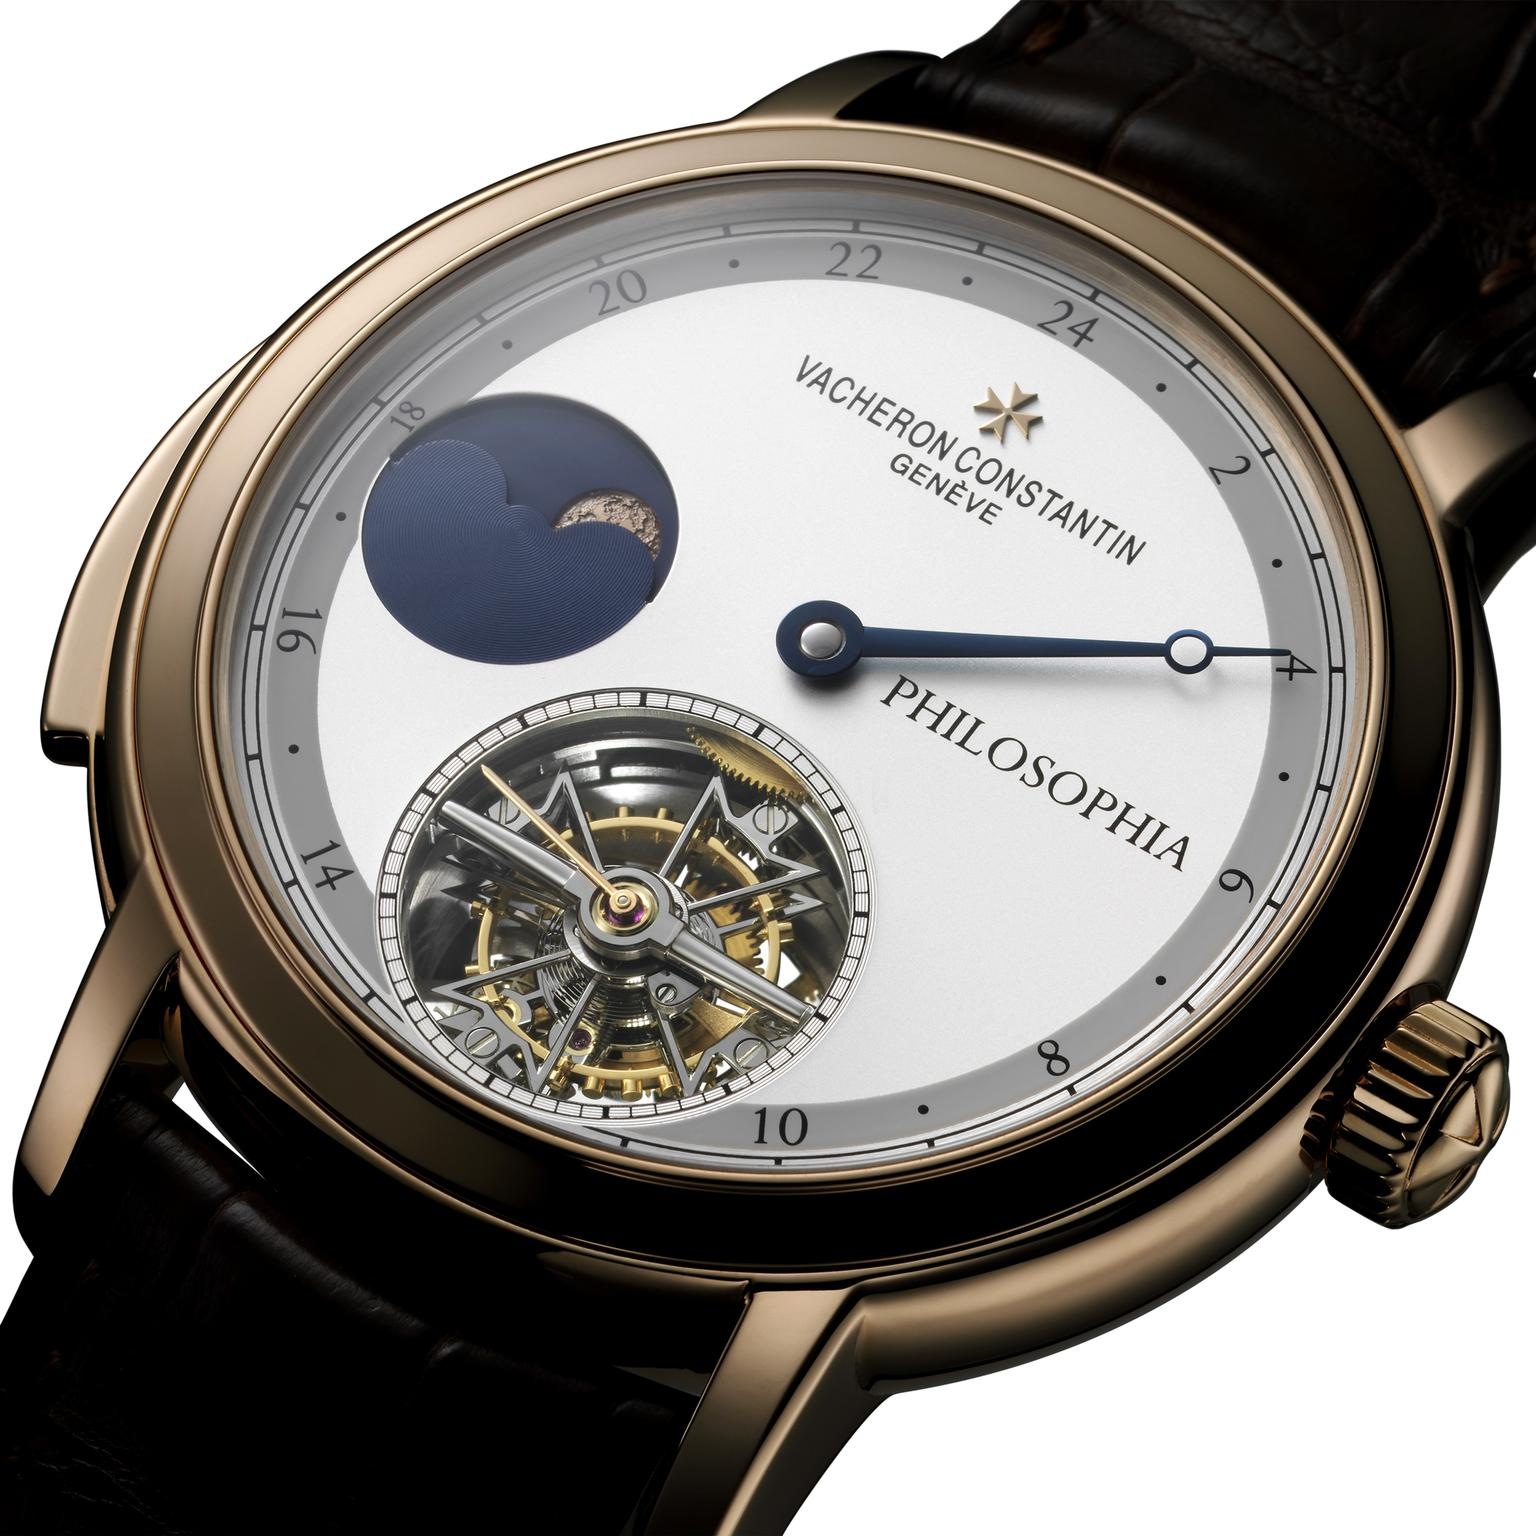 Vacheron Constantin Philosophia watch